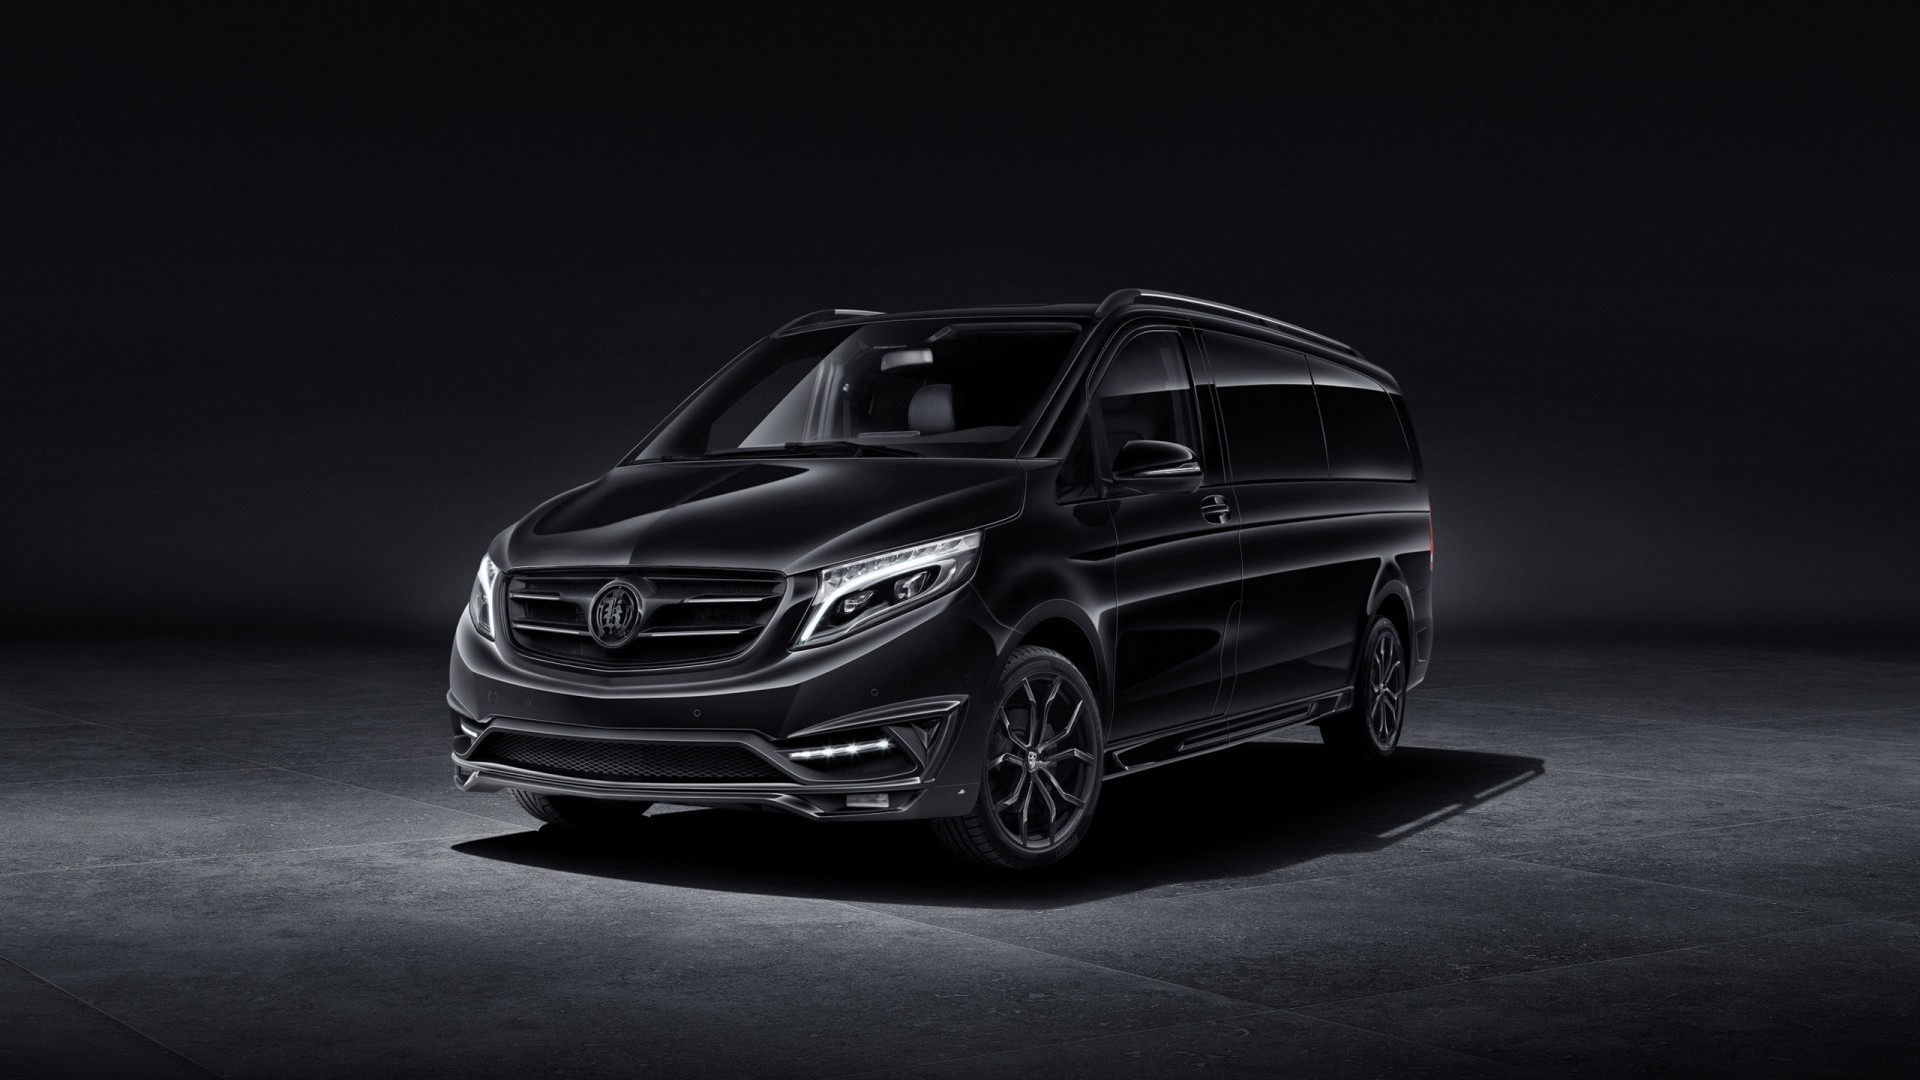 Mercedes Amg Wallpaper Iphone 2016 Larte Design Mercedes Benz V Class Black Crystal